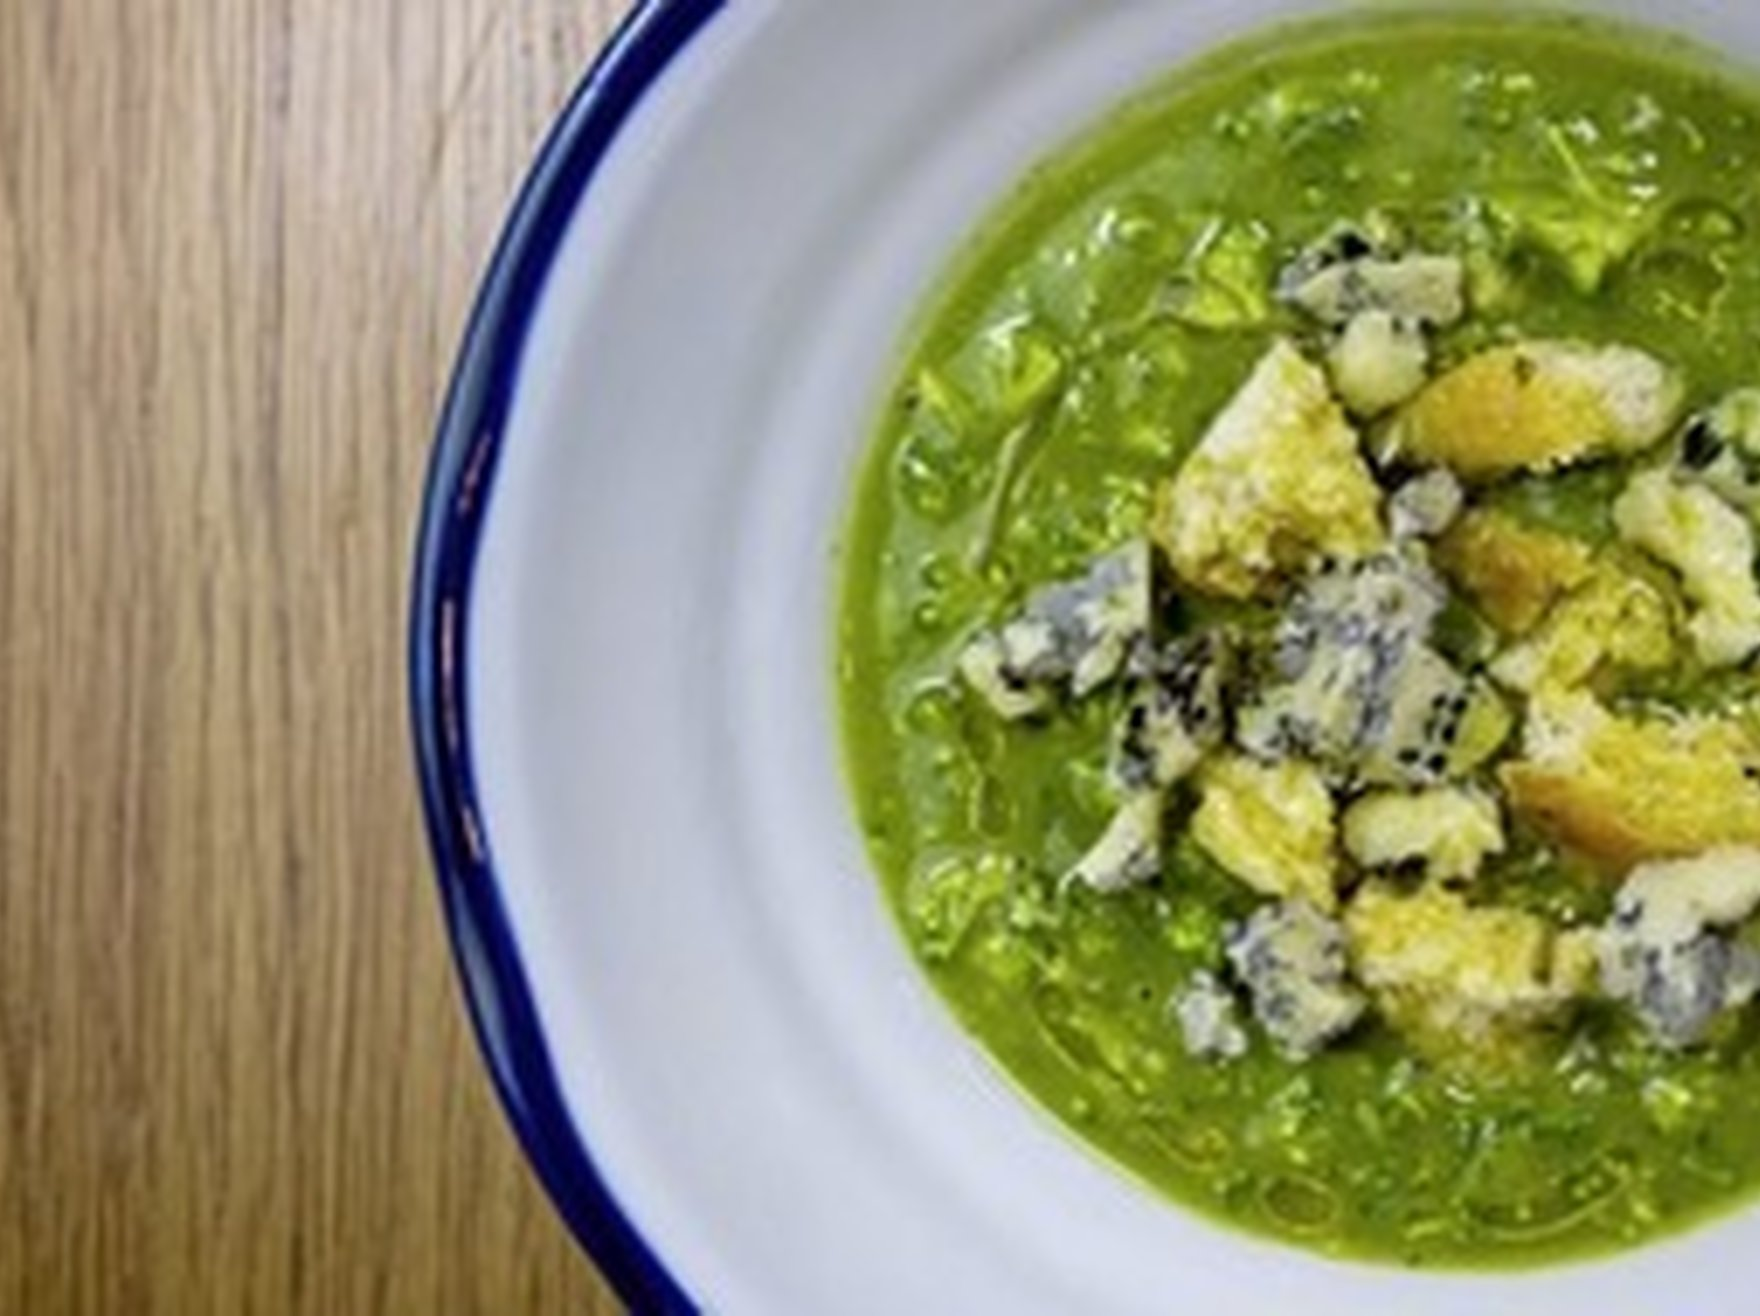 James Street Cookery School: Soups – Kale and walnut, broccoli with blue cheese